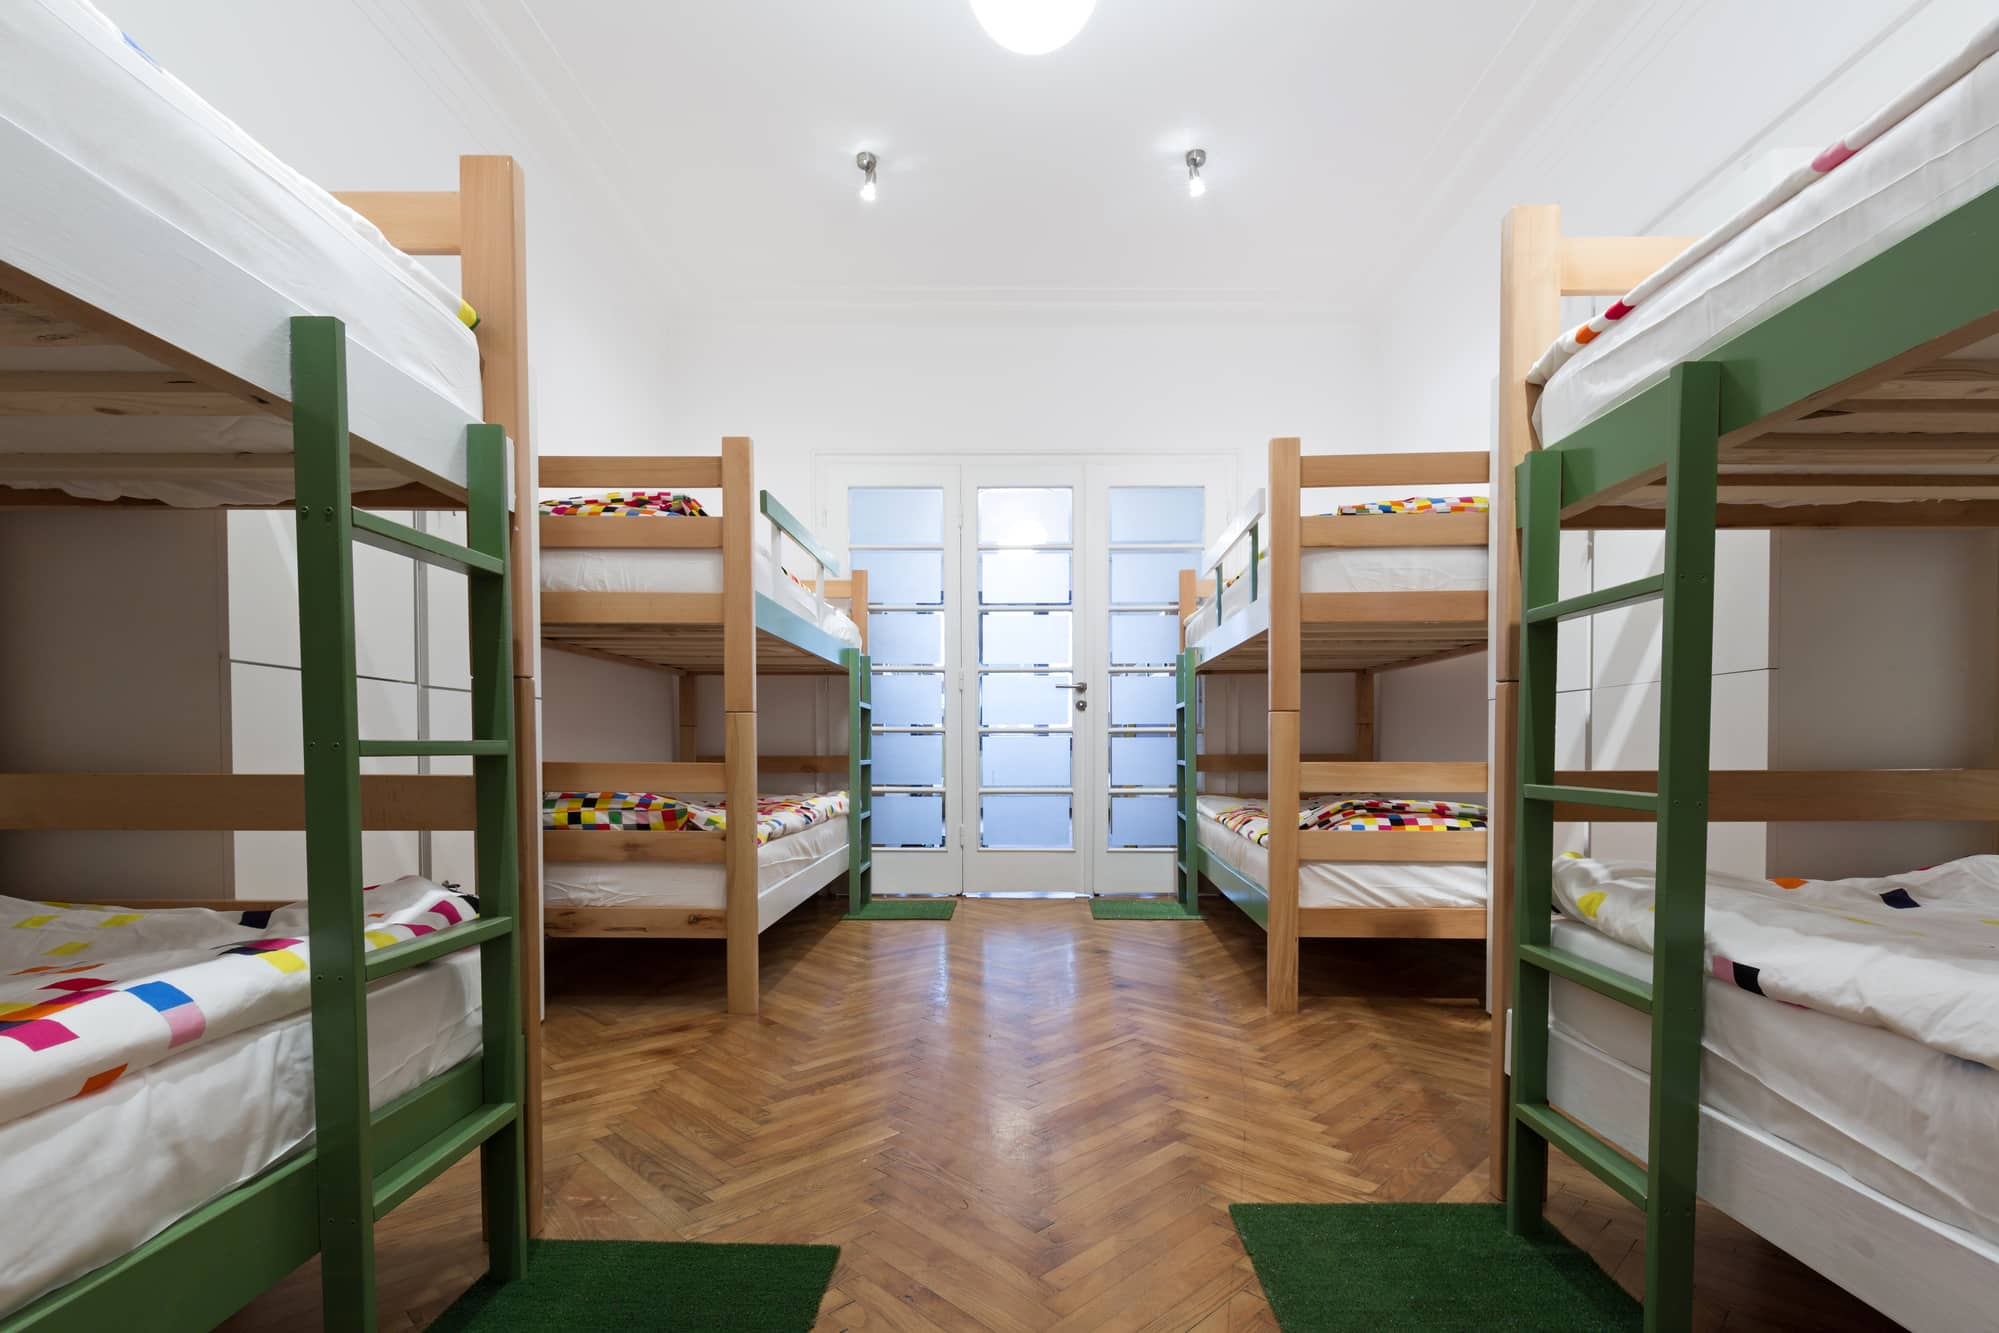 Bunk beds in a hostel room